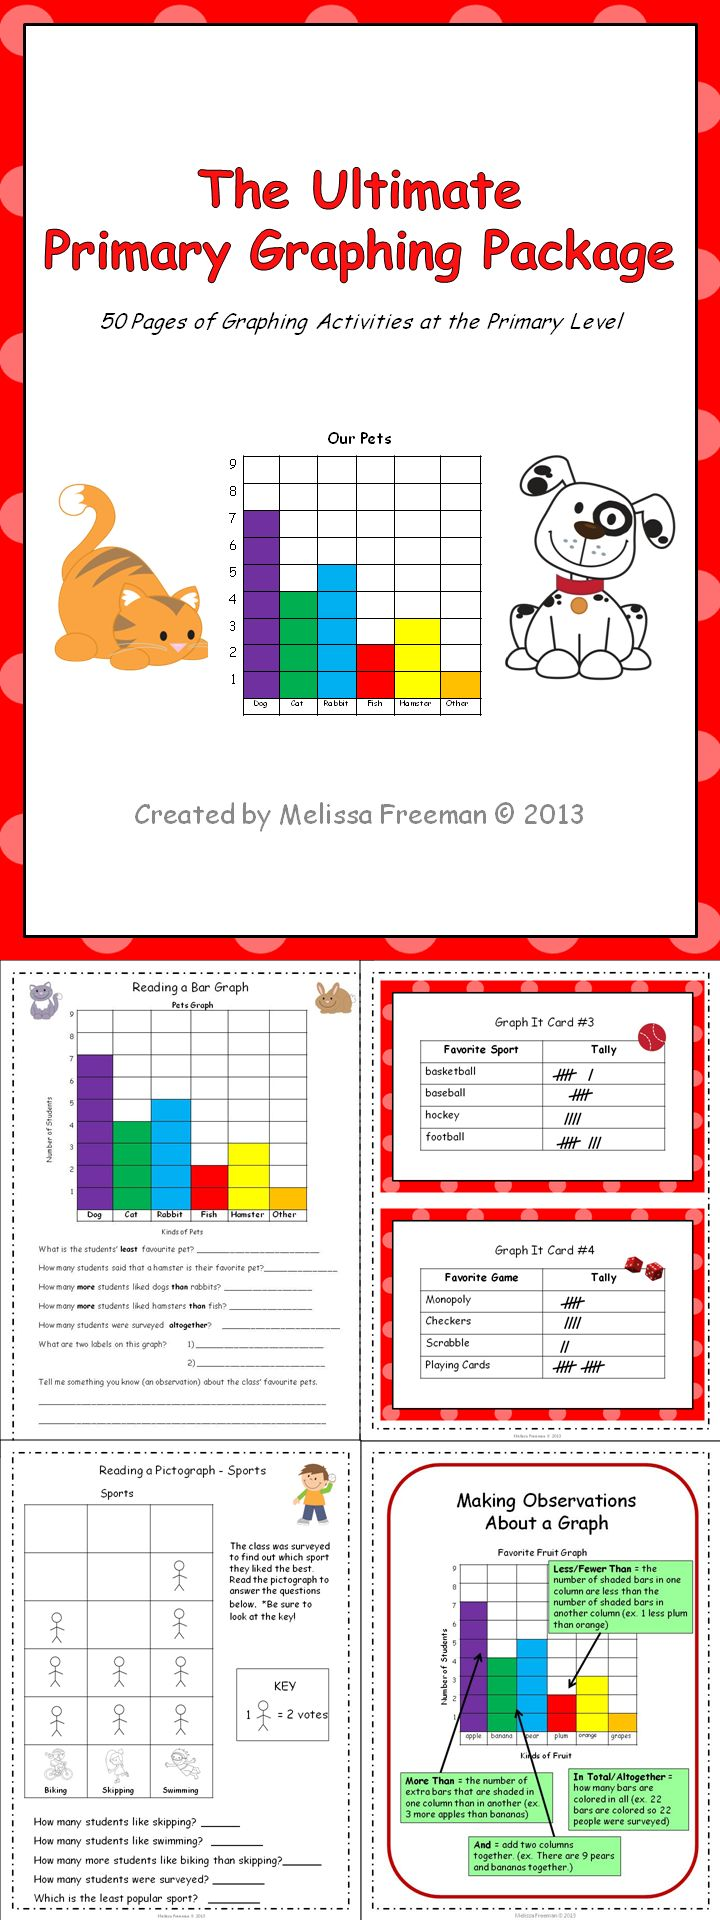 47 best images about 3rd grade math graphing on pinterest math activities and word walls. Black Bedroom Furniture Sets. Home Design Ideas